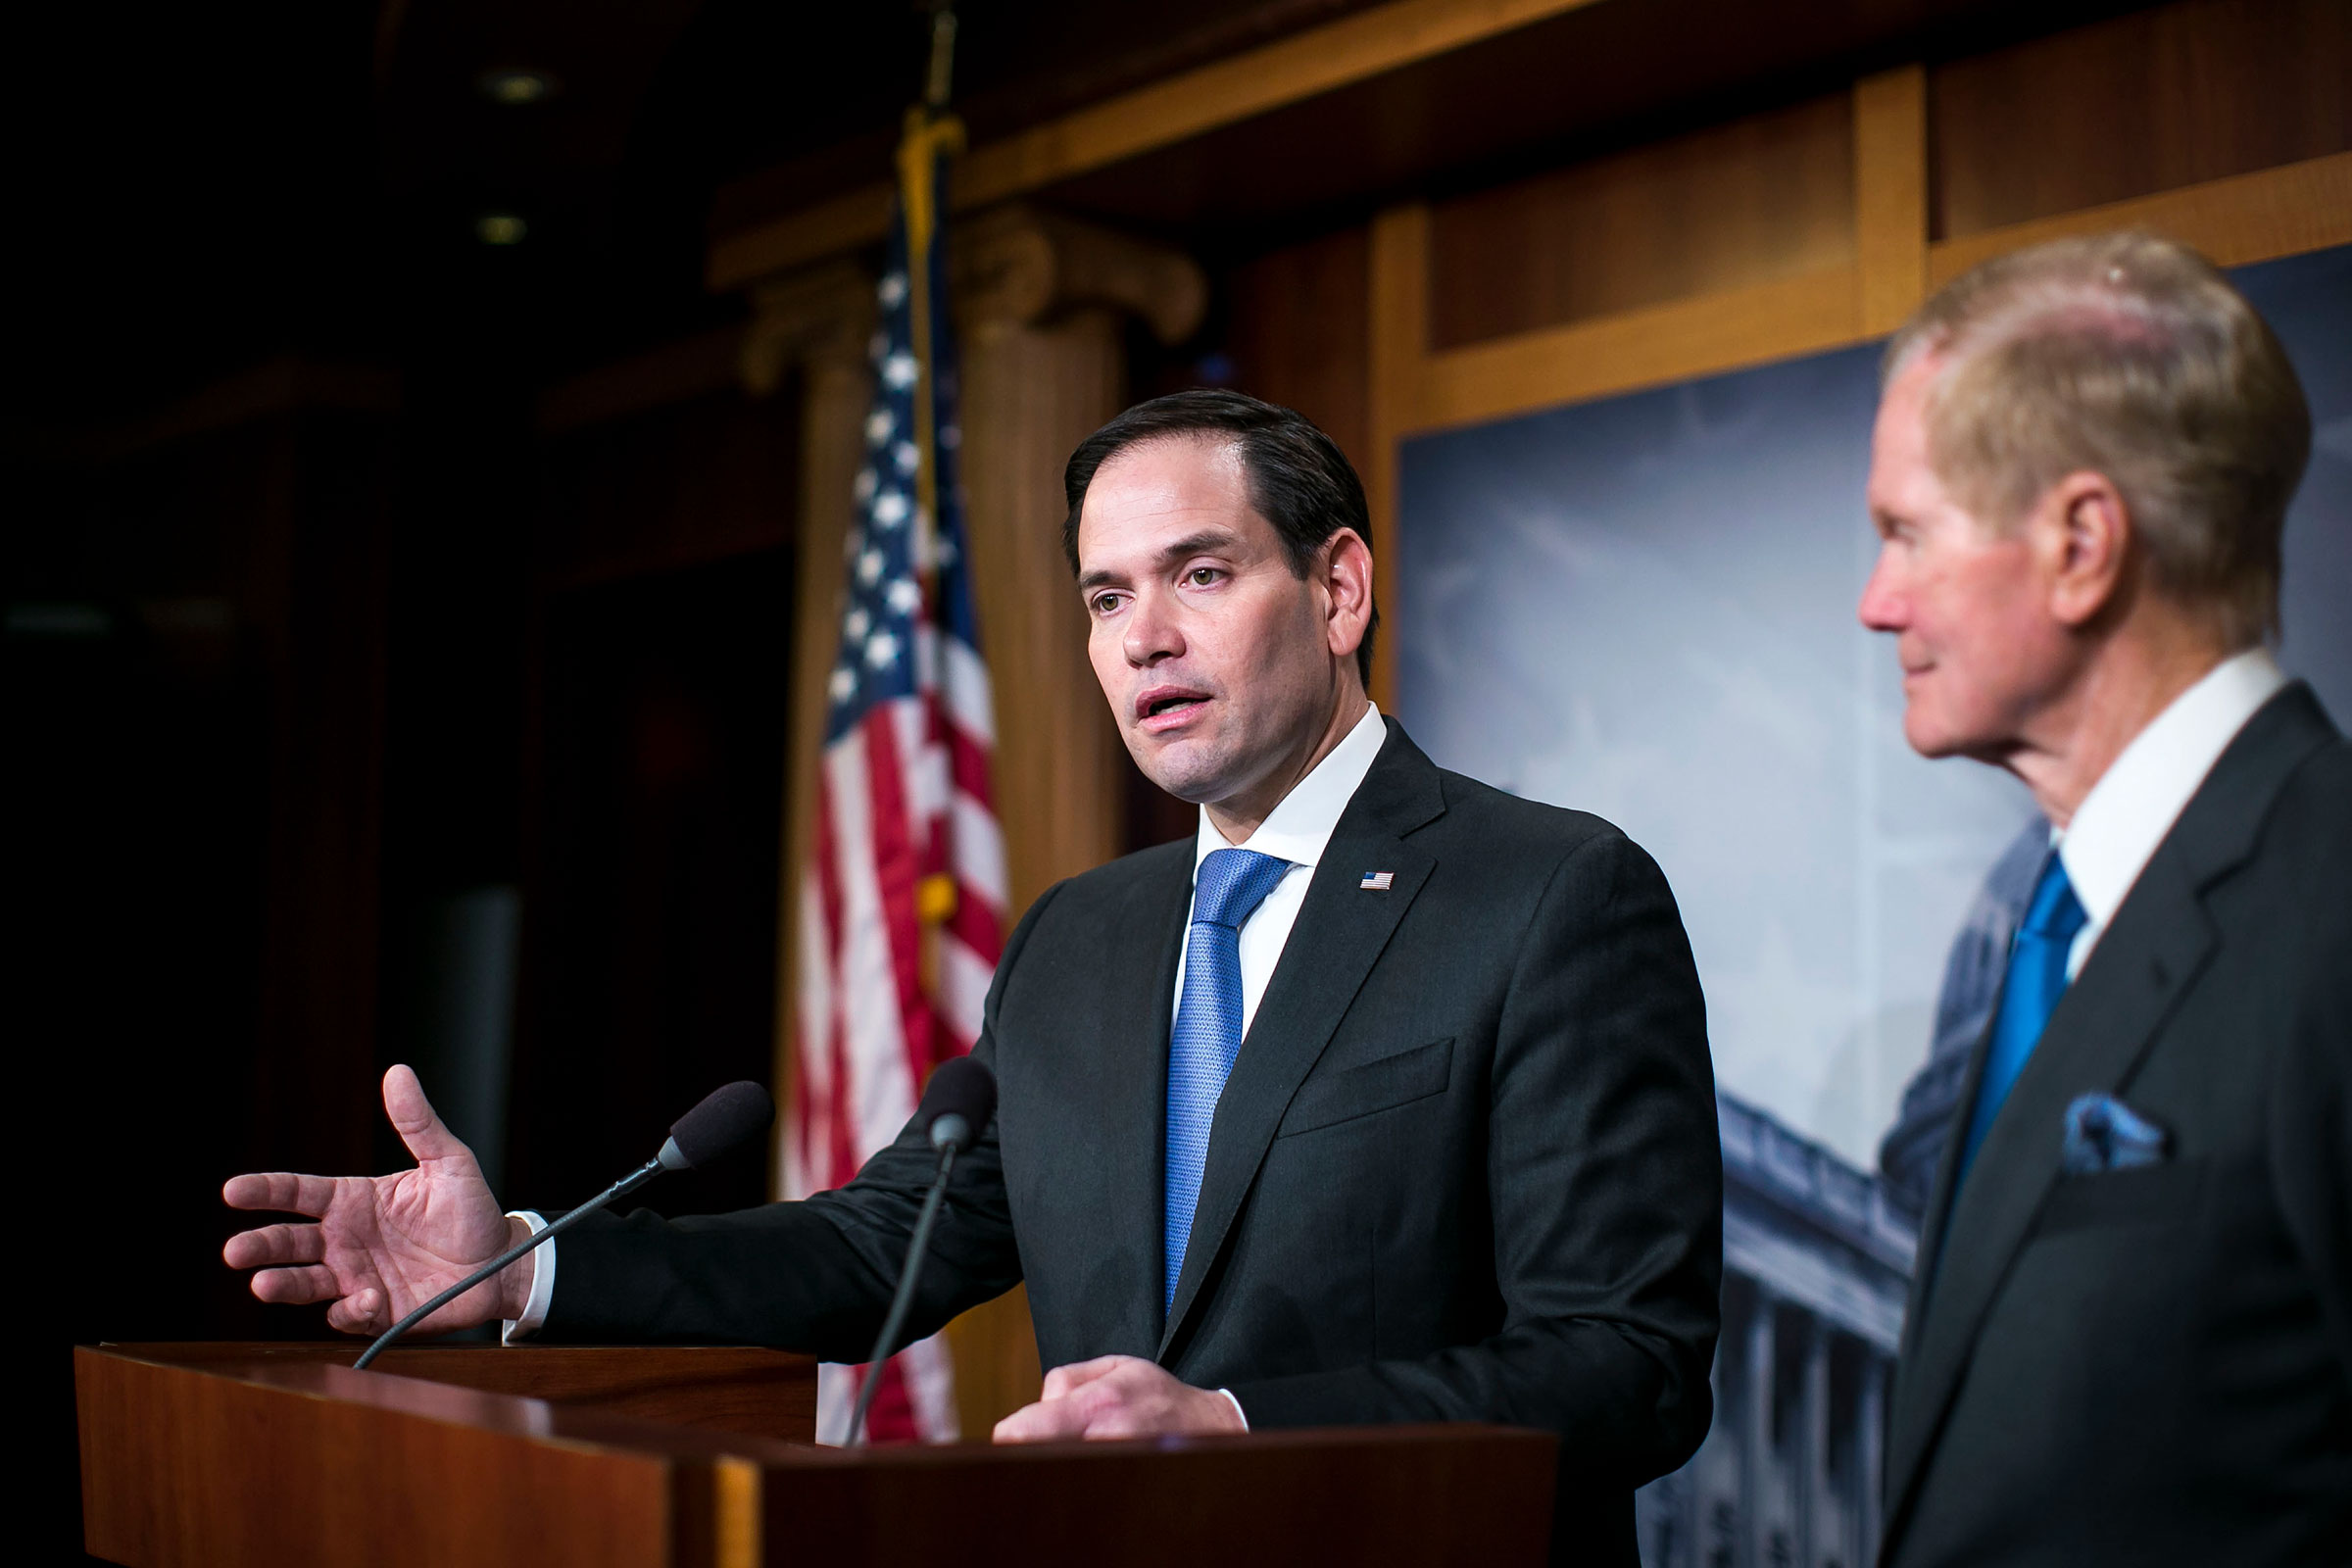 Senator Rubio (R., Fla.) supported the Paycheck Protection Program, part of the $2 trillion U.S. stimulus.